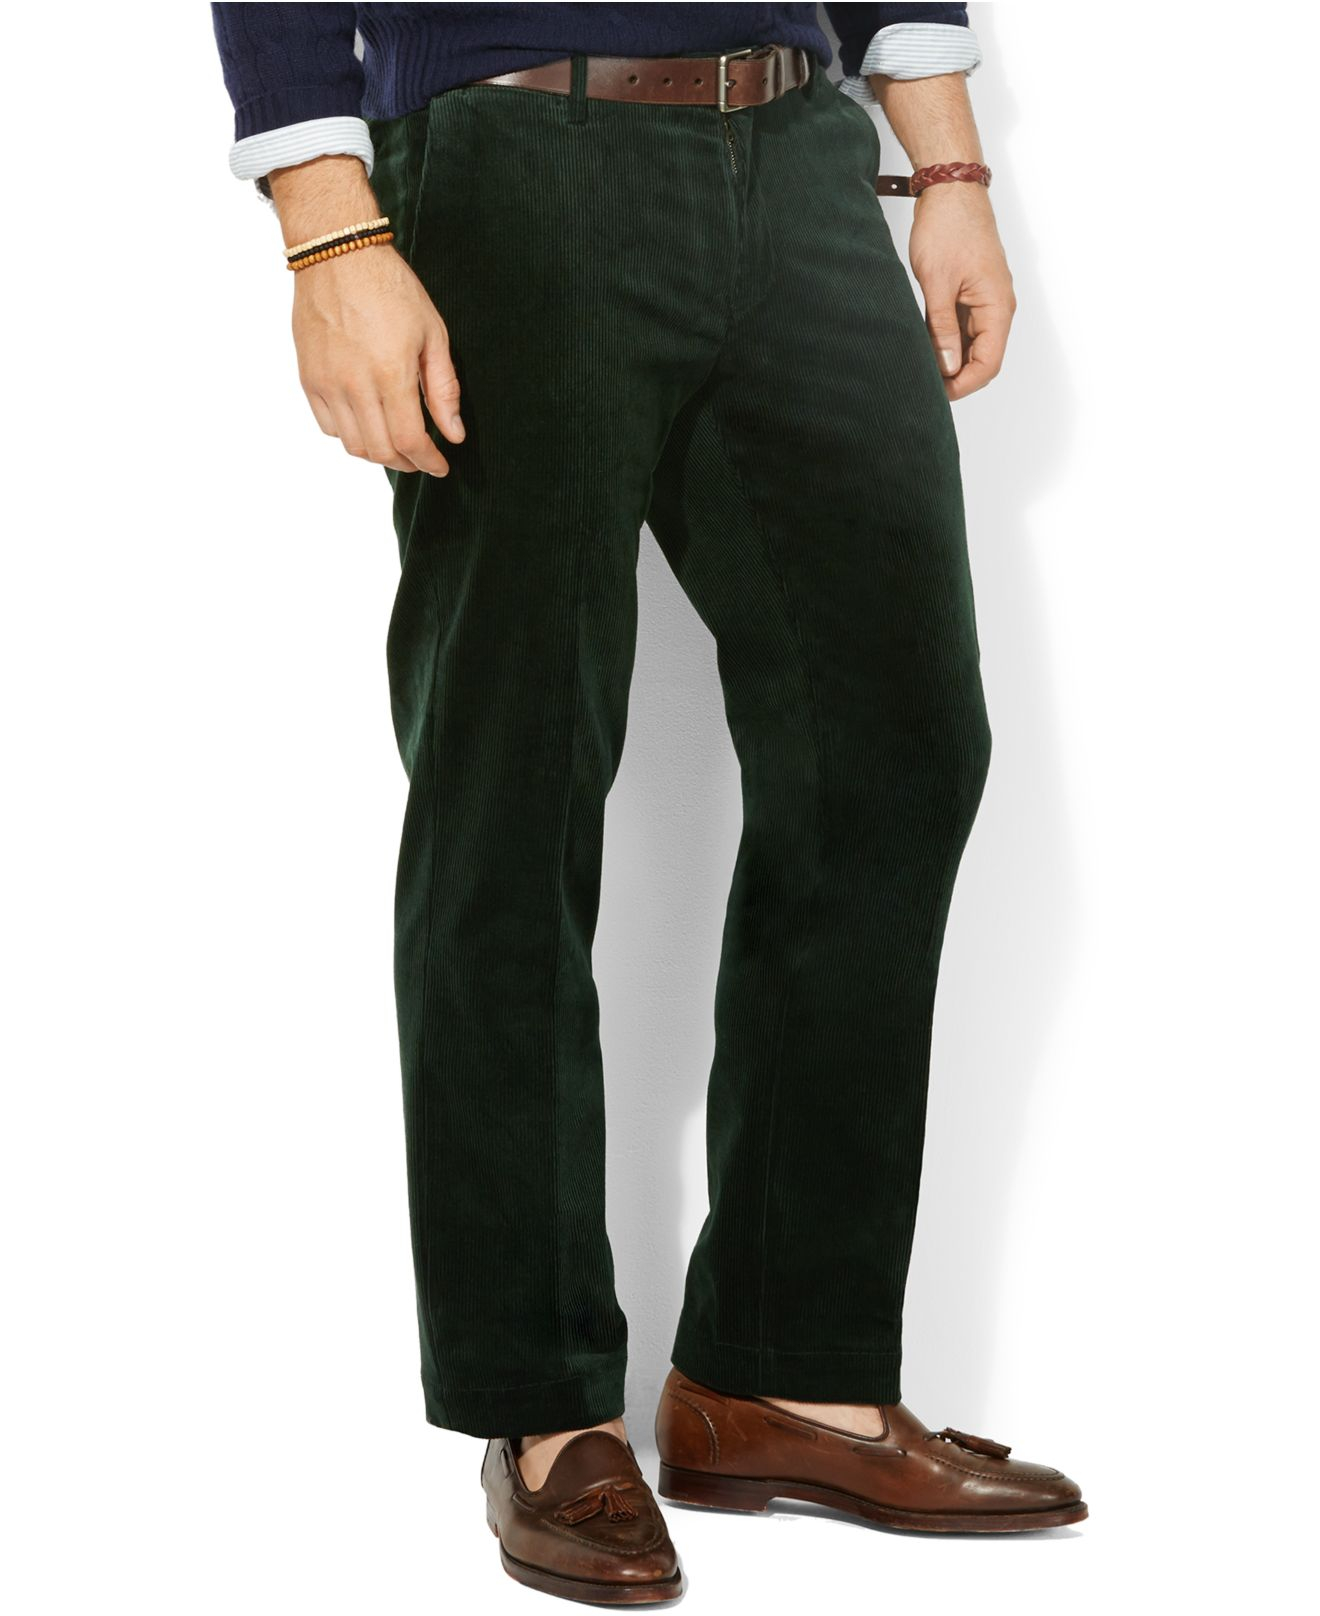 Polo ralph lauren Big And Tall Ten Wale Thick Corduroy Pants in ...